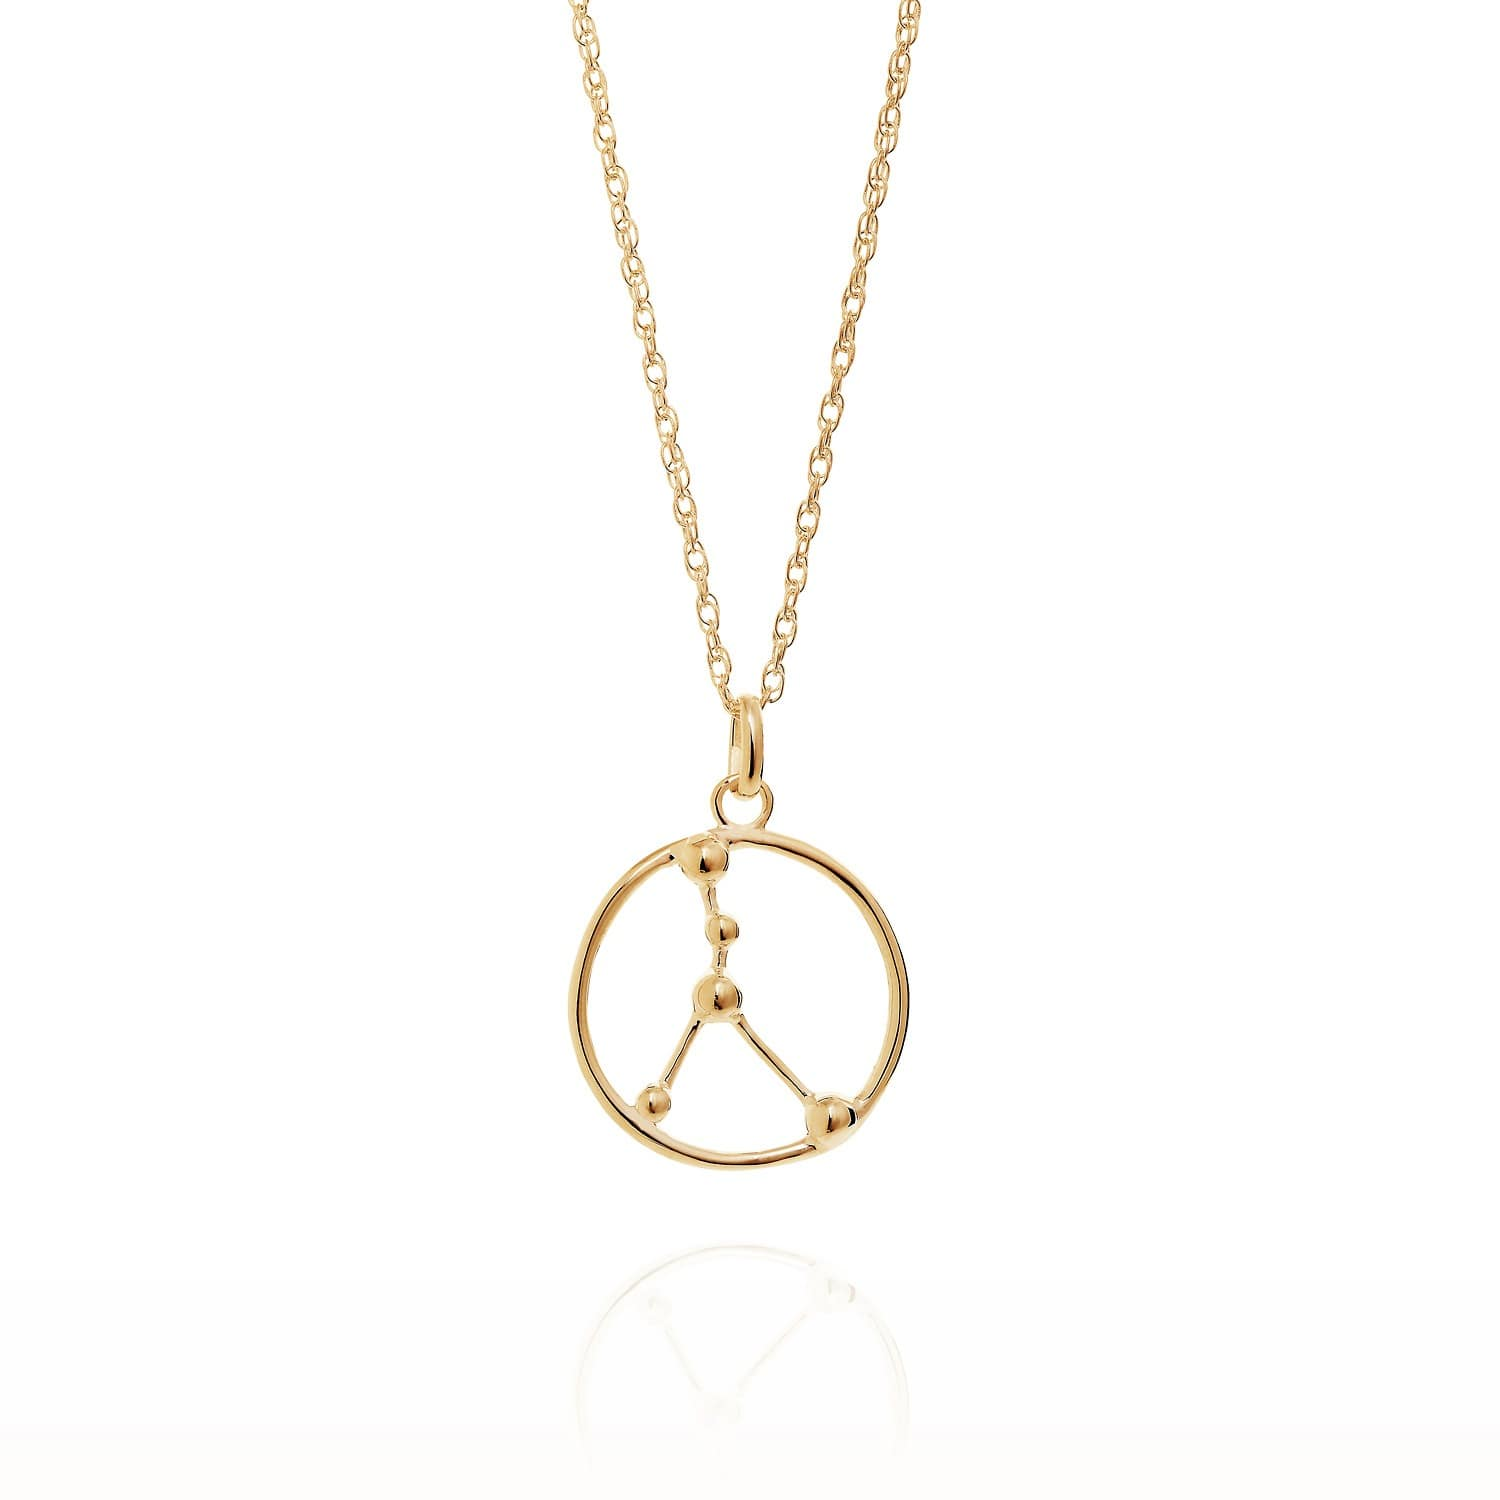 Cancer Astrology Necklace In 9ct Gold Yasmin Everley Jewellery